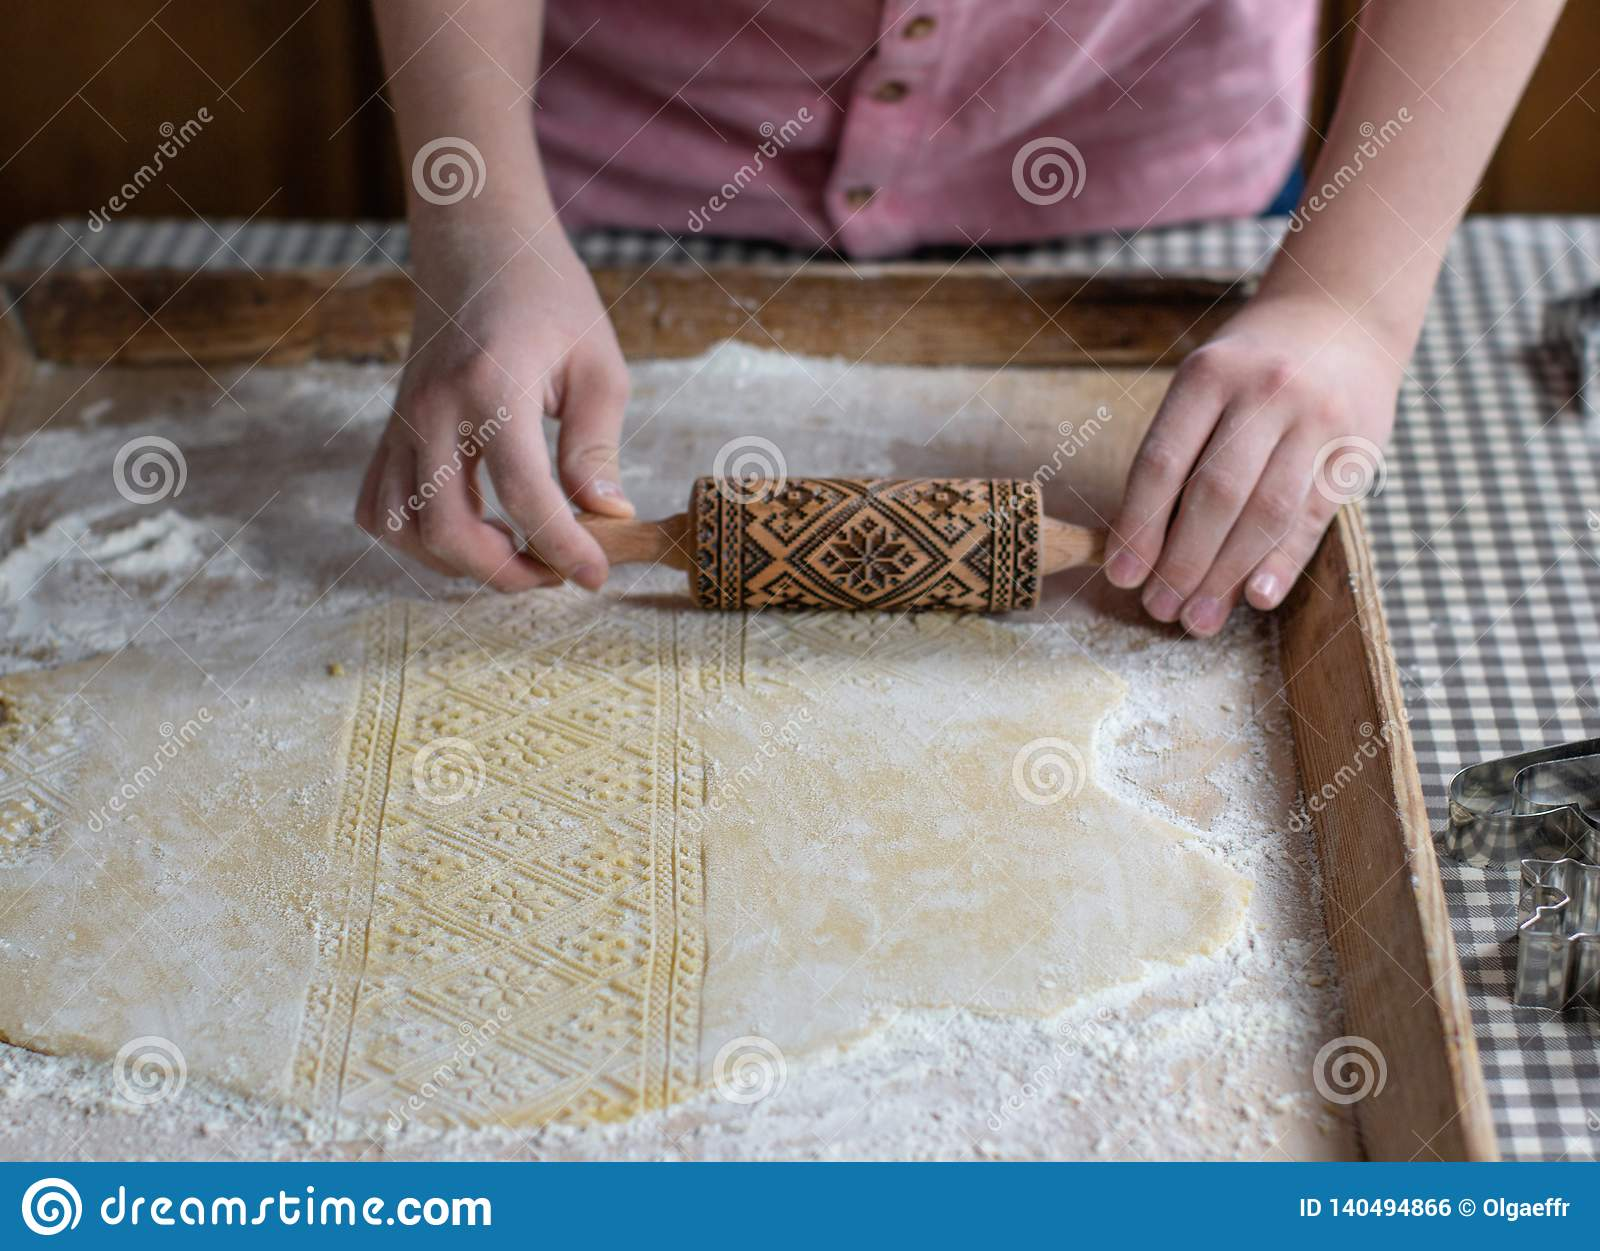 Hands rolling dough with an embossing rolling pin, on a wooden background